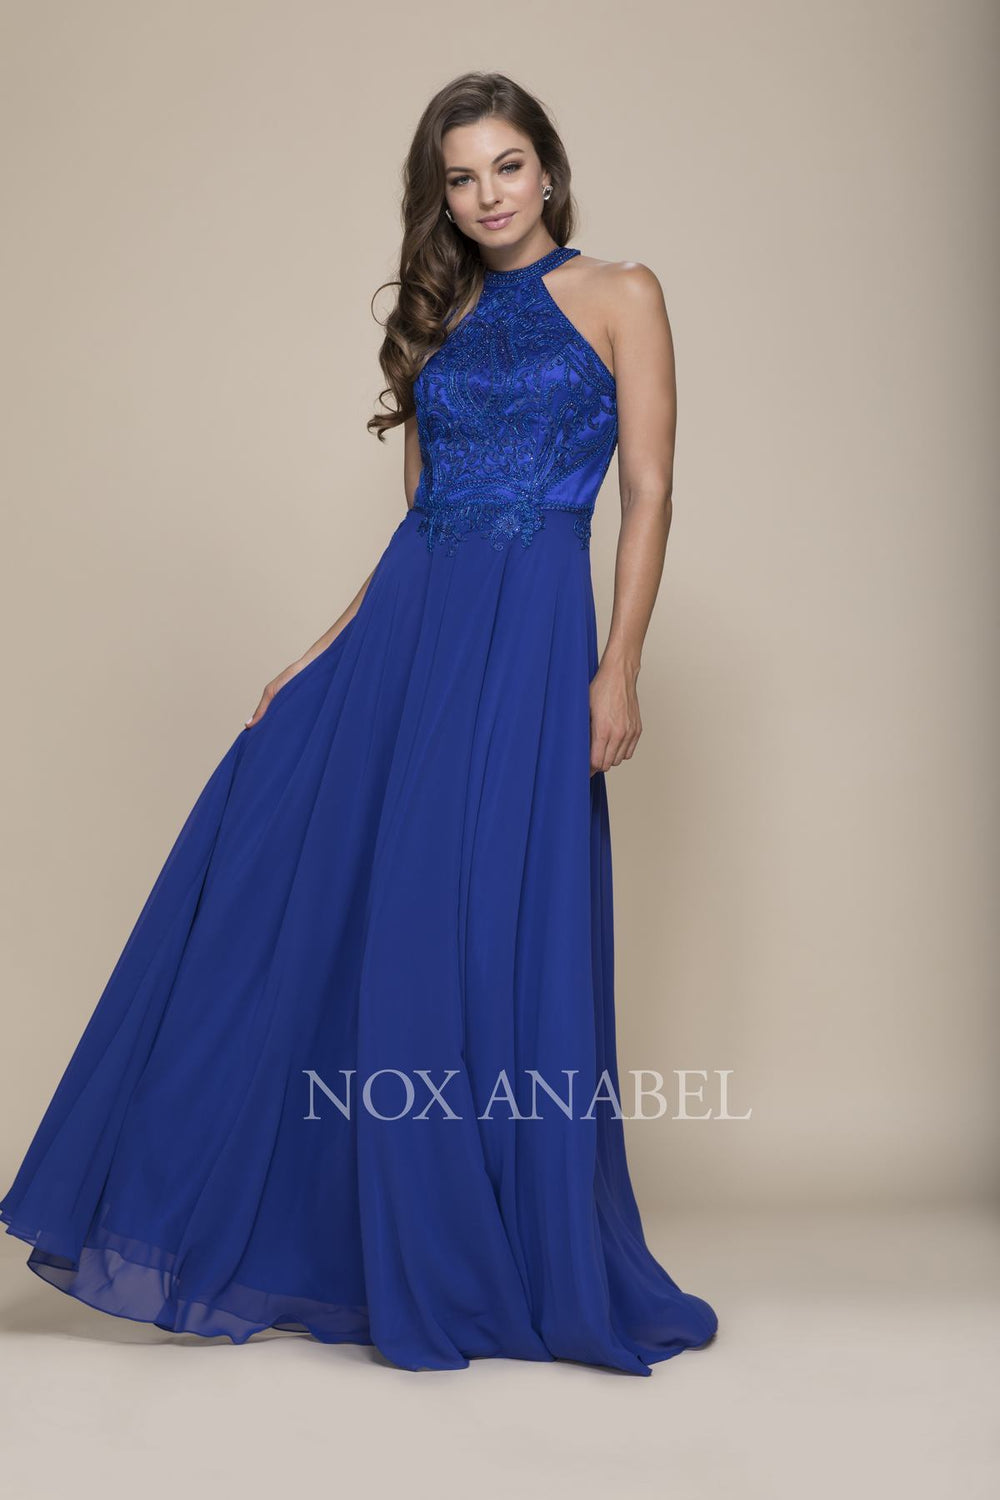 BEAUTIFUL EMBROIDERED HALTER CHIFFON A-LINE PROM DRESS J117 BY NARIANNA